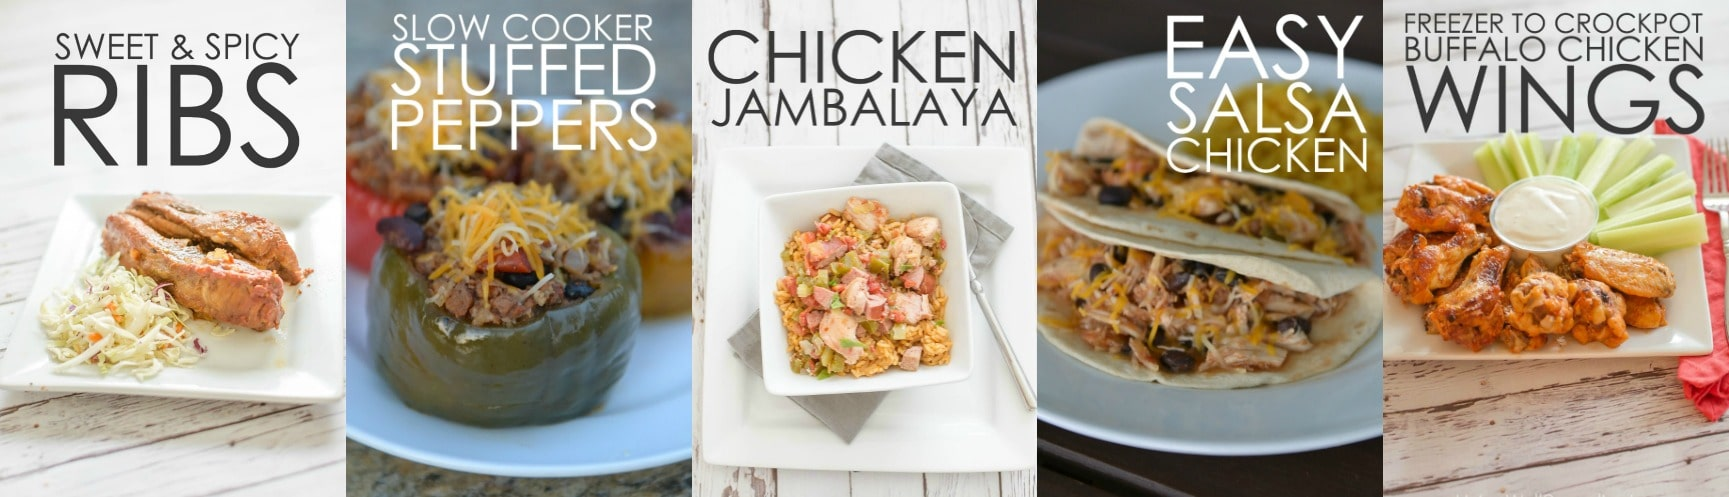 10 Meals in an Hour | Freezer Cooking | Freezer Meals | Meal Planning | Sweet & Spicy Ribs | Slow Cooker Stuffed Peppers | Chicken Jambalaya | Easy Salsa Chicken | Freezer to Crockpot Buffalo Chicken Wings